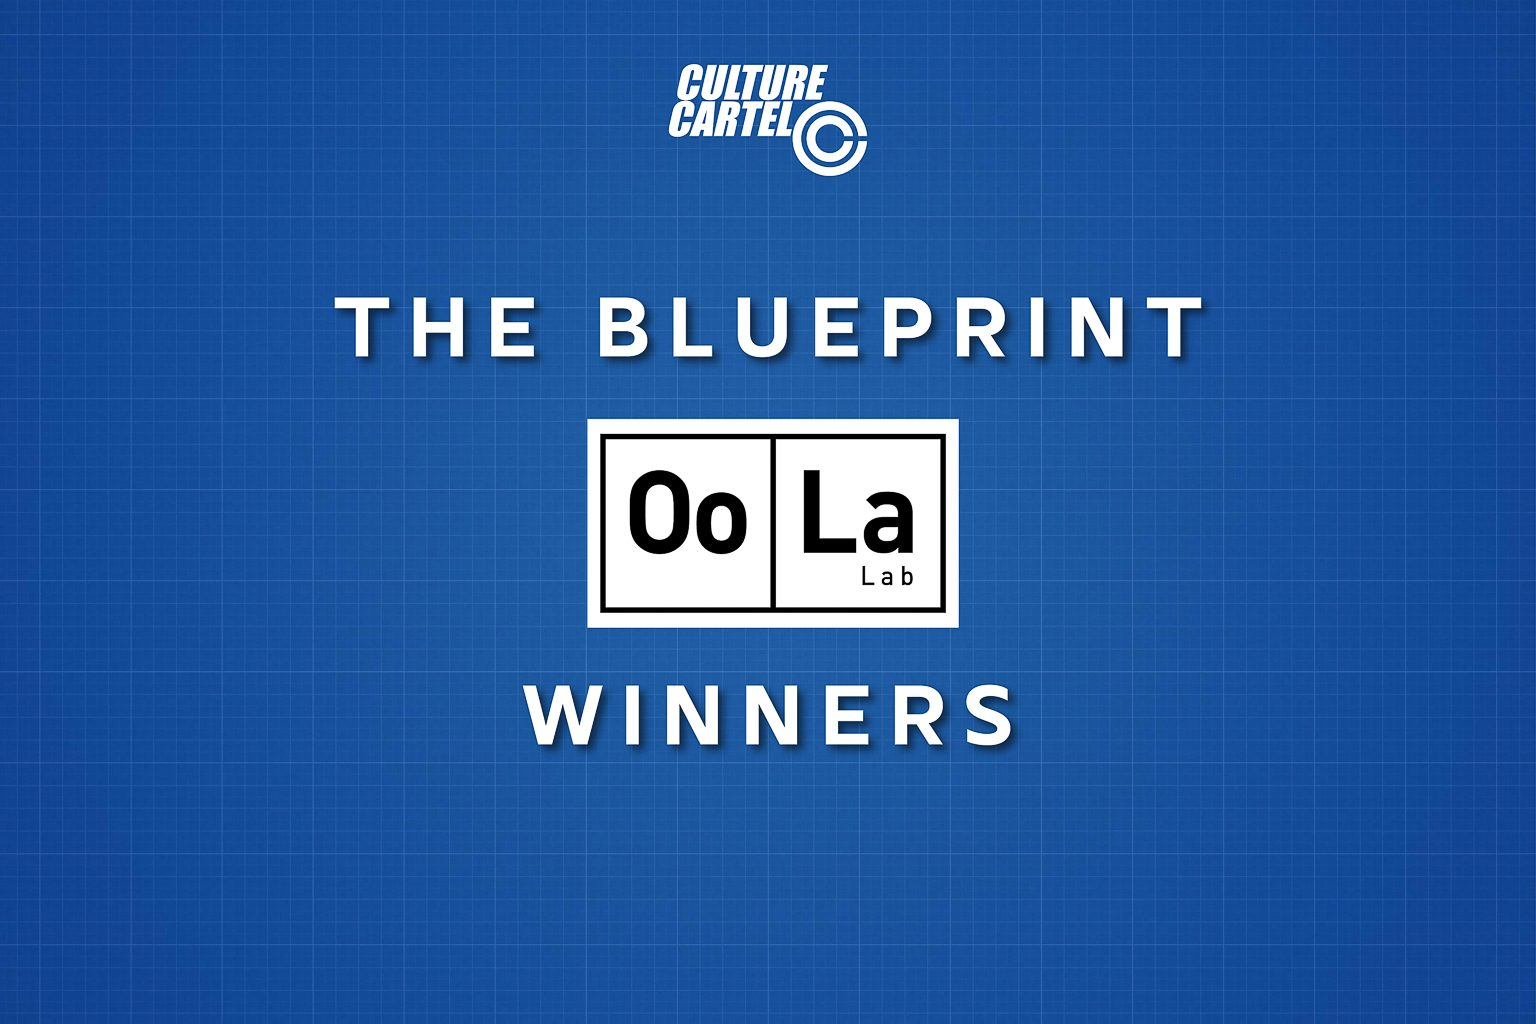 Oo La Lab : THE BLUEPRINT